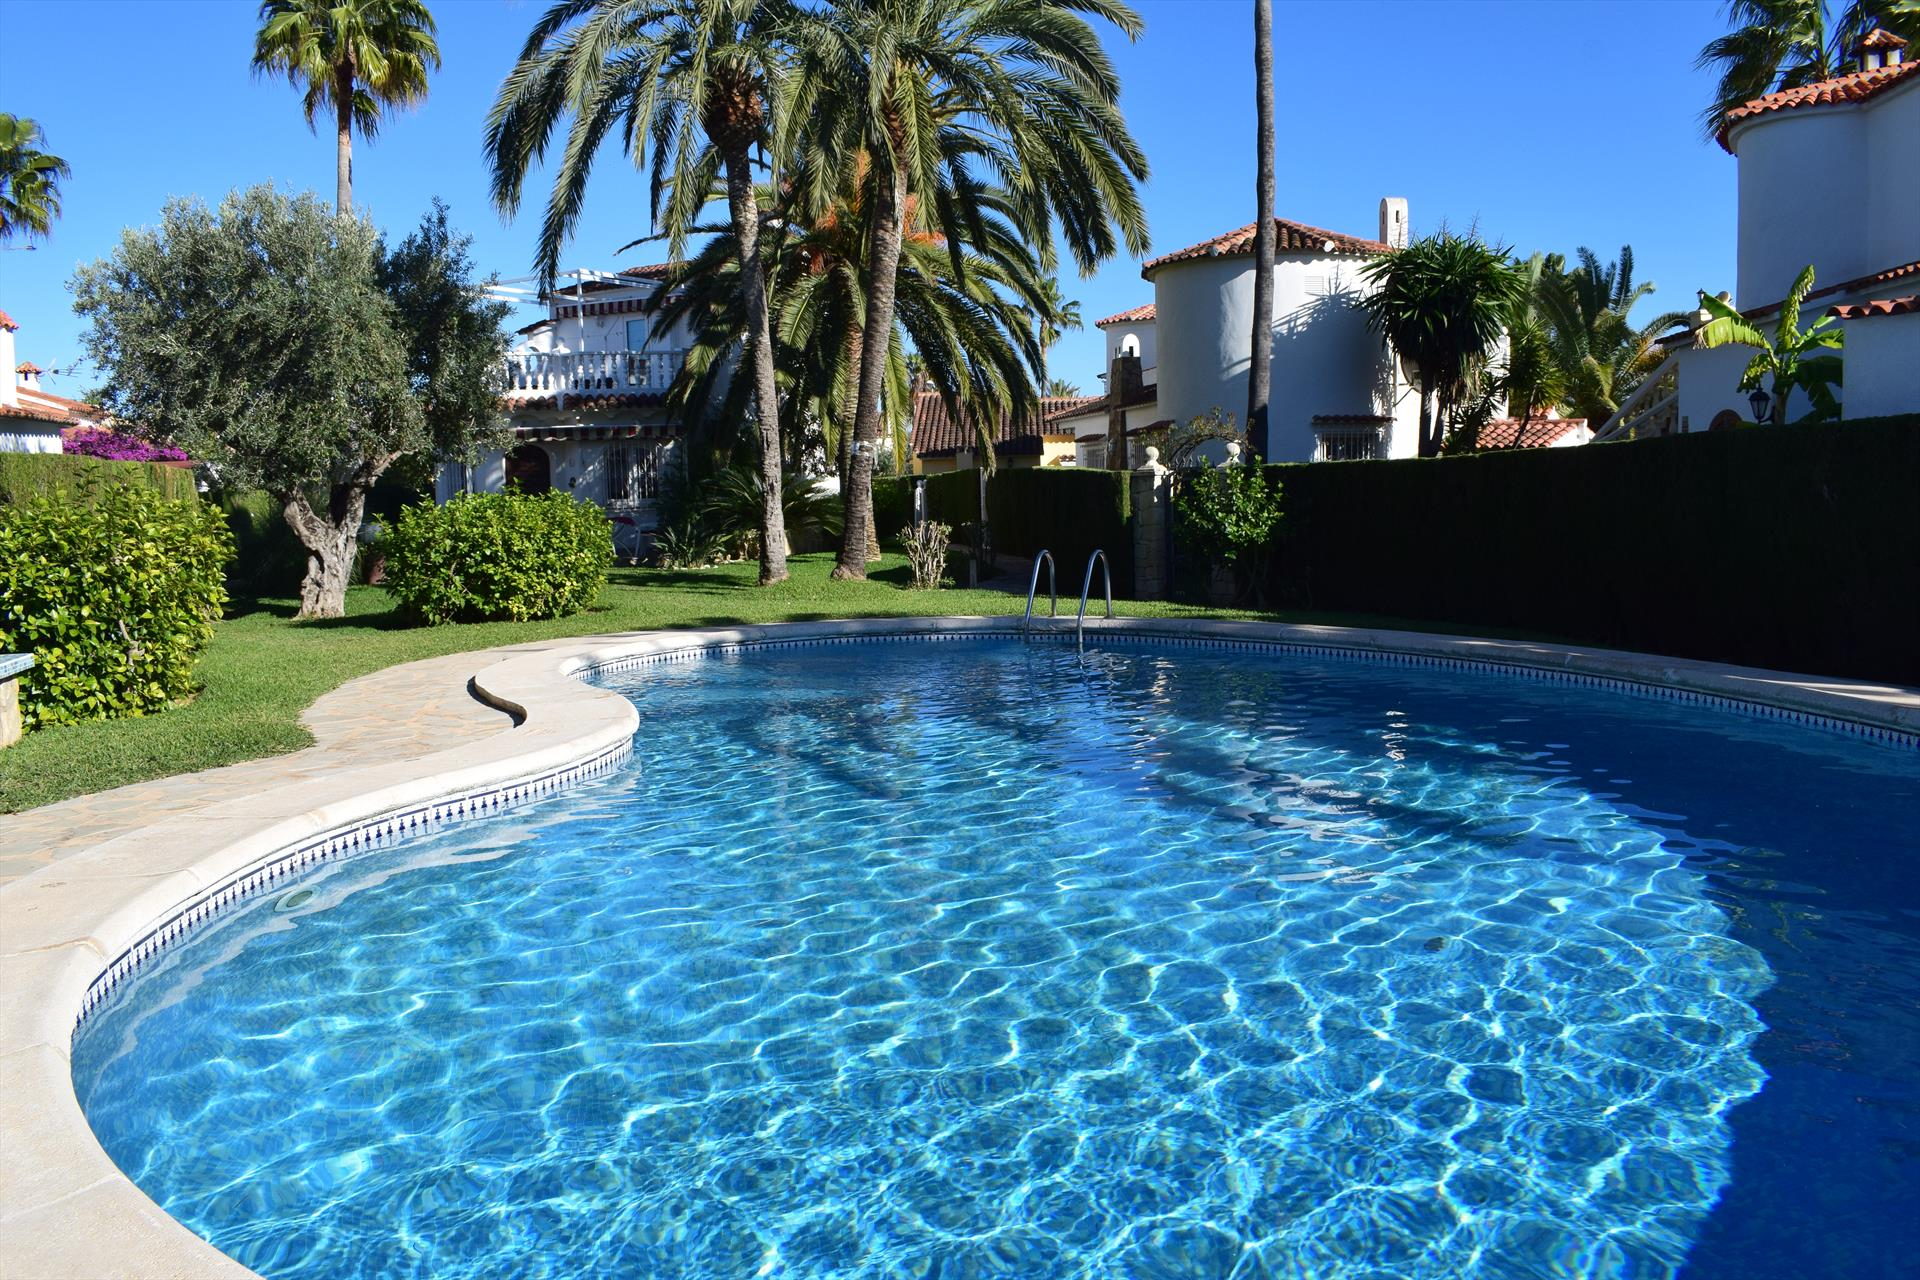 VI4027 Velazquez Oliva Nova,Beautiful and cheerful holiday house in Oliva, on the Costa Blanca, Spain  with communal pool for 6 persons.....